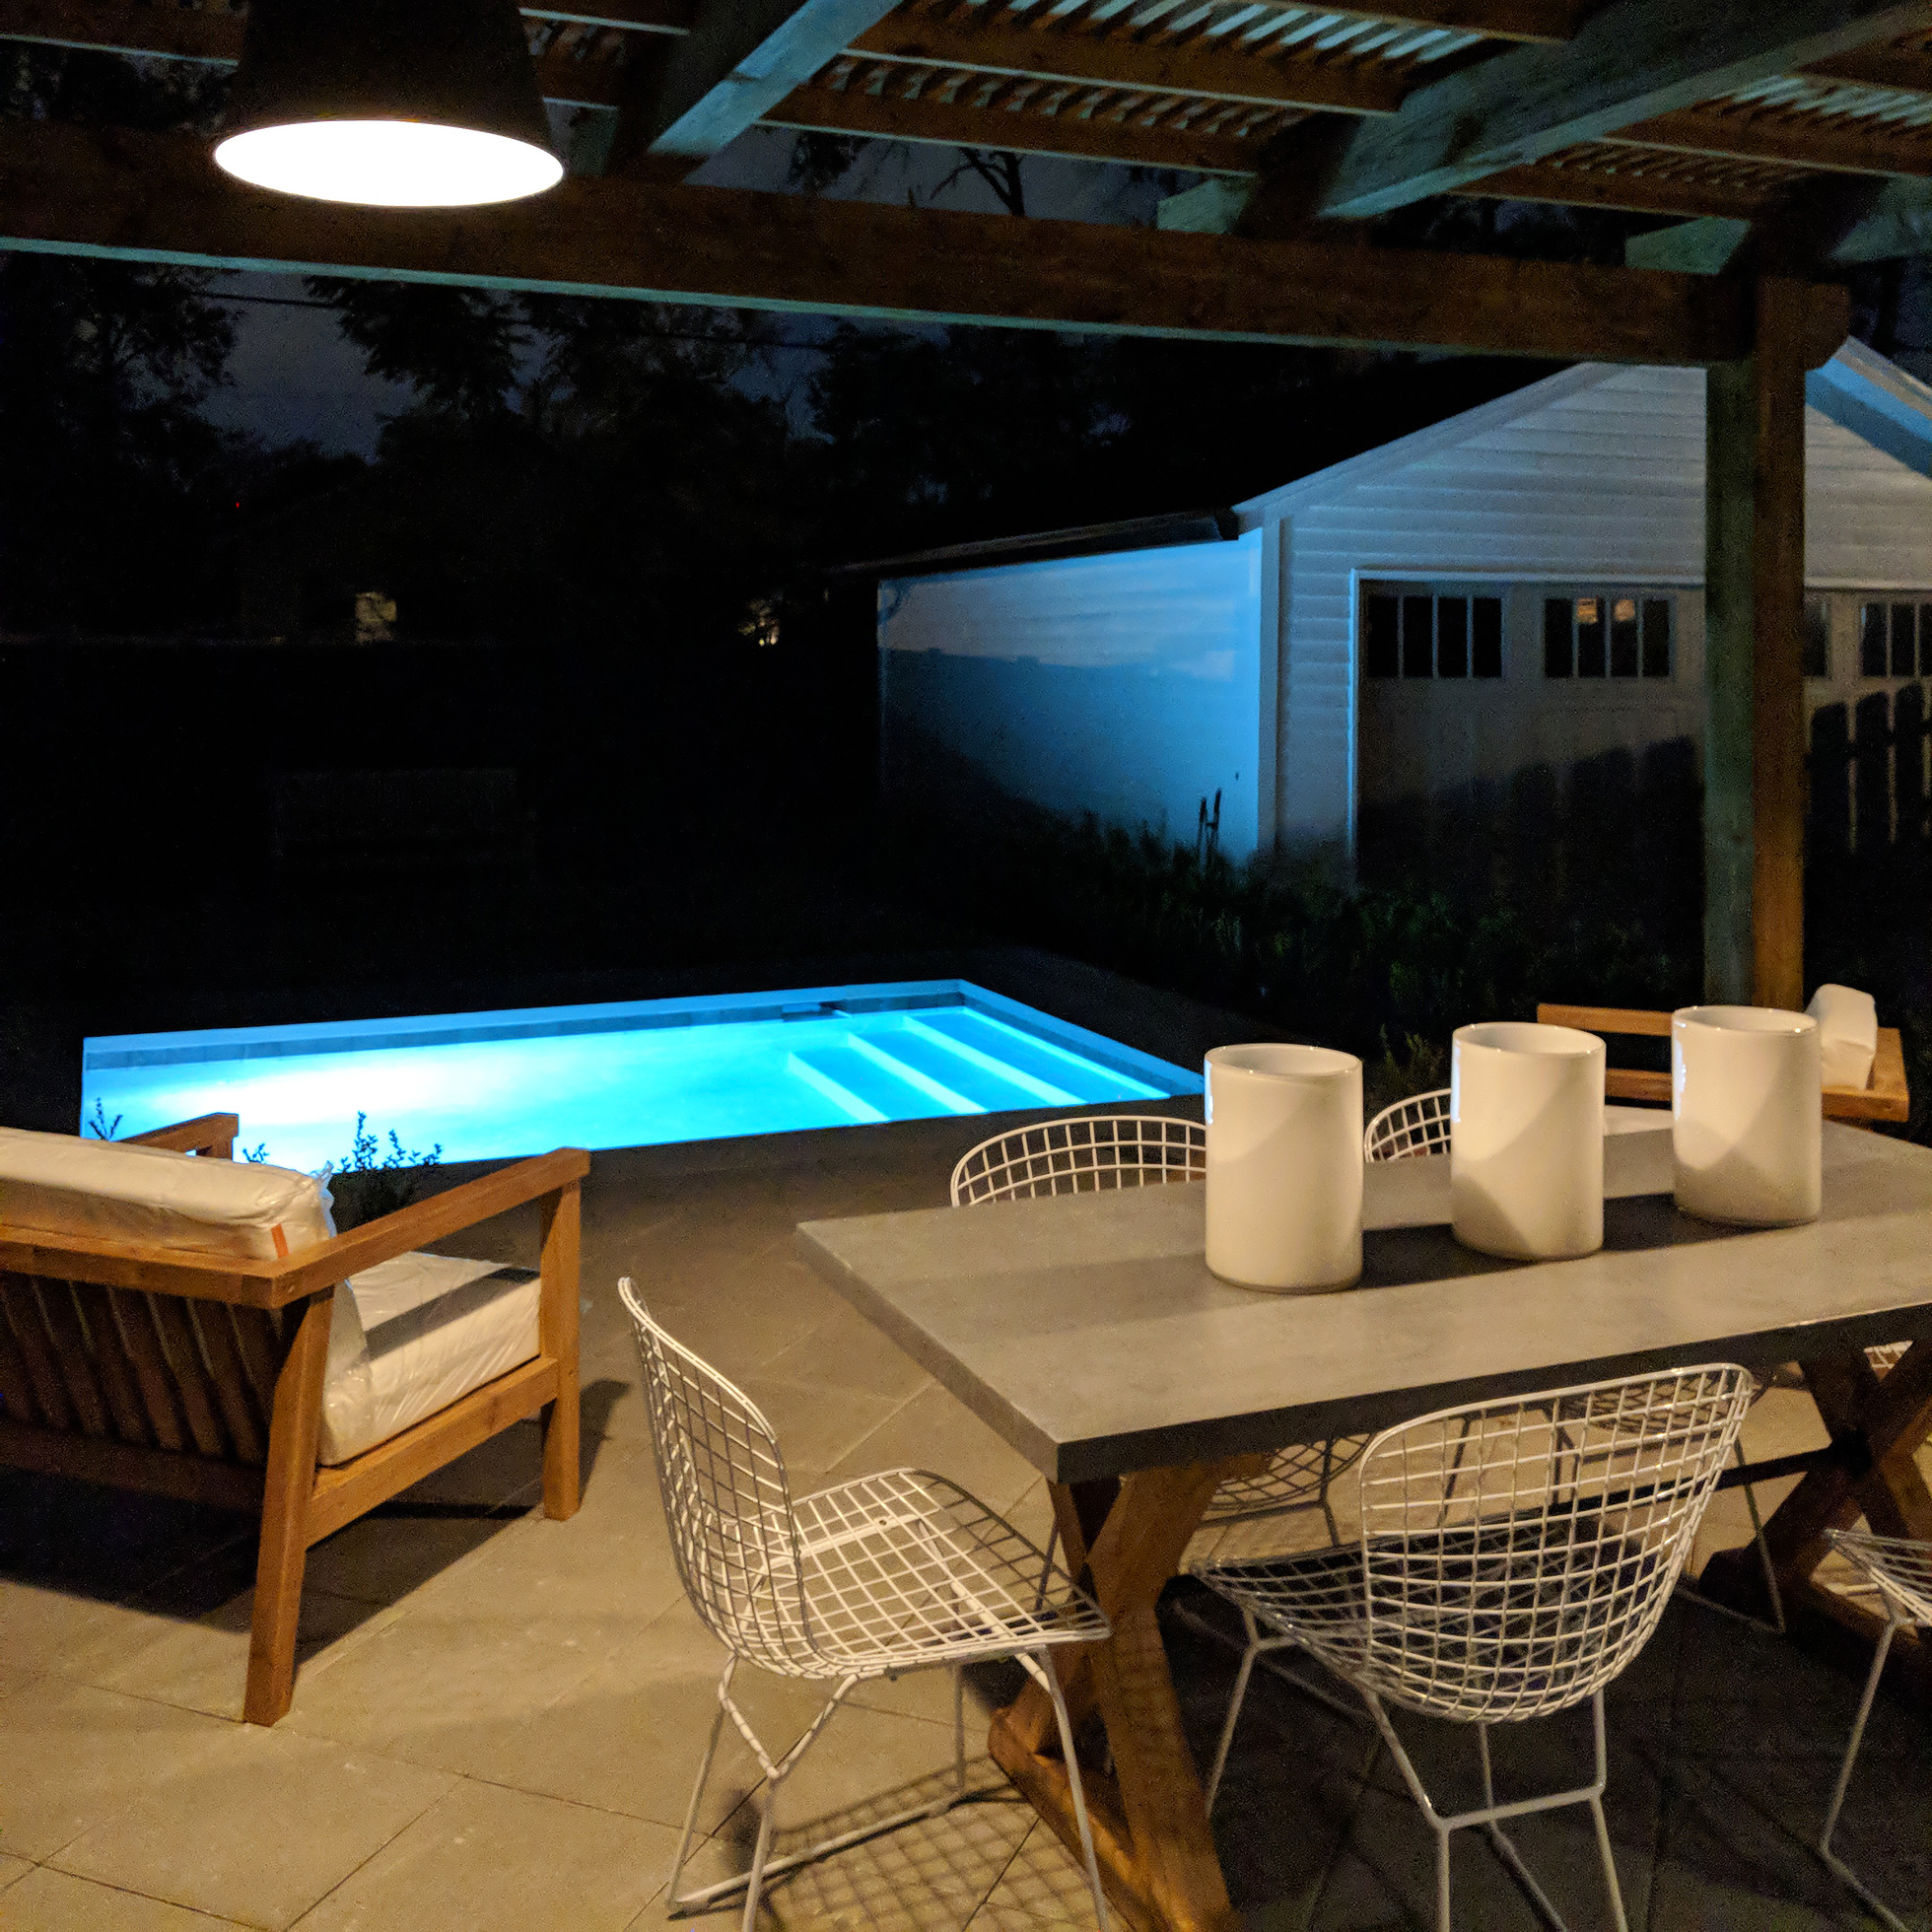 A backyard with pool and covered patio at night